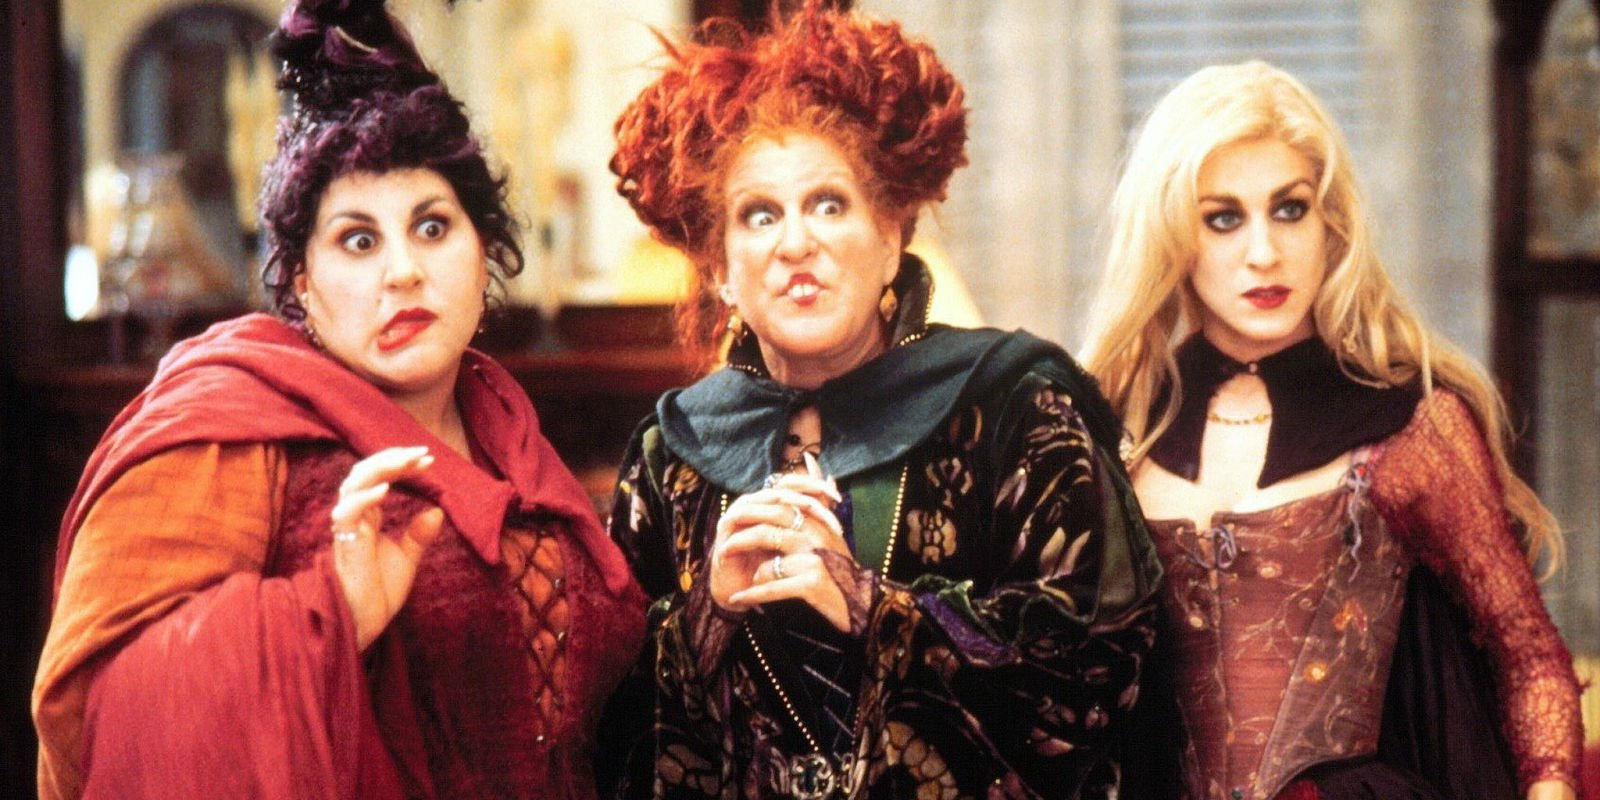 Hocus Pocus star Doug Jones says a '20 years later' sequel isn't off the table